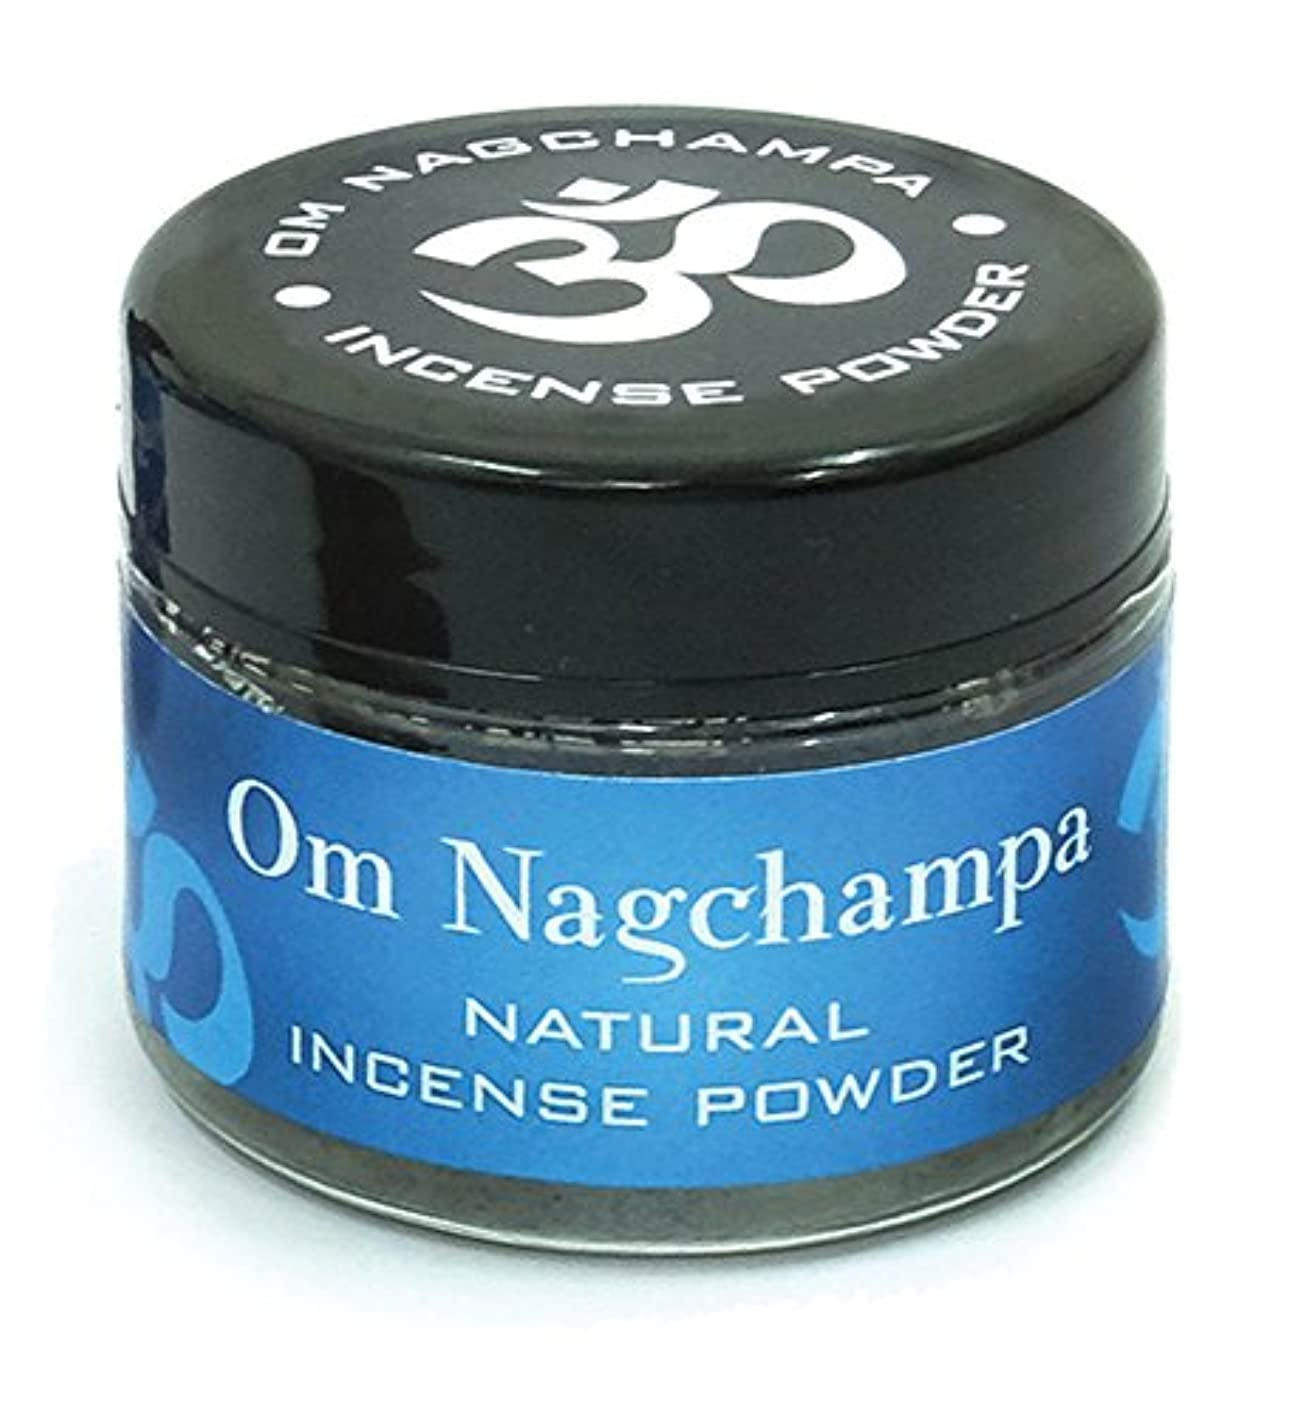 Om Nagchampa自然Incense Powder Slow Burn 20 g